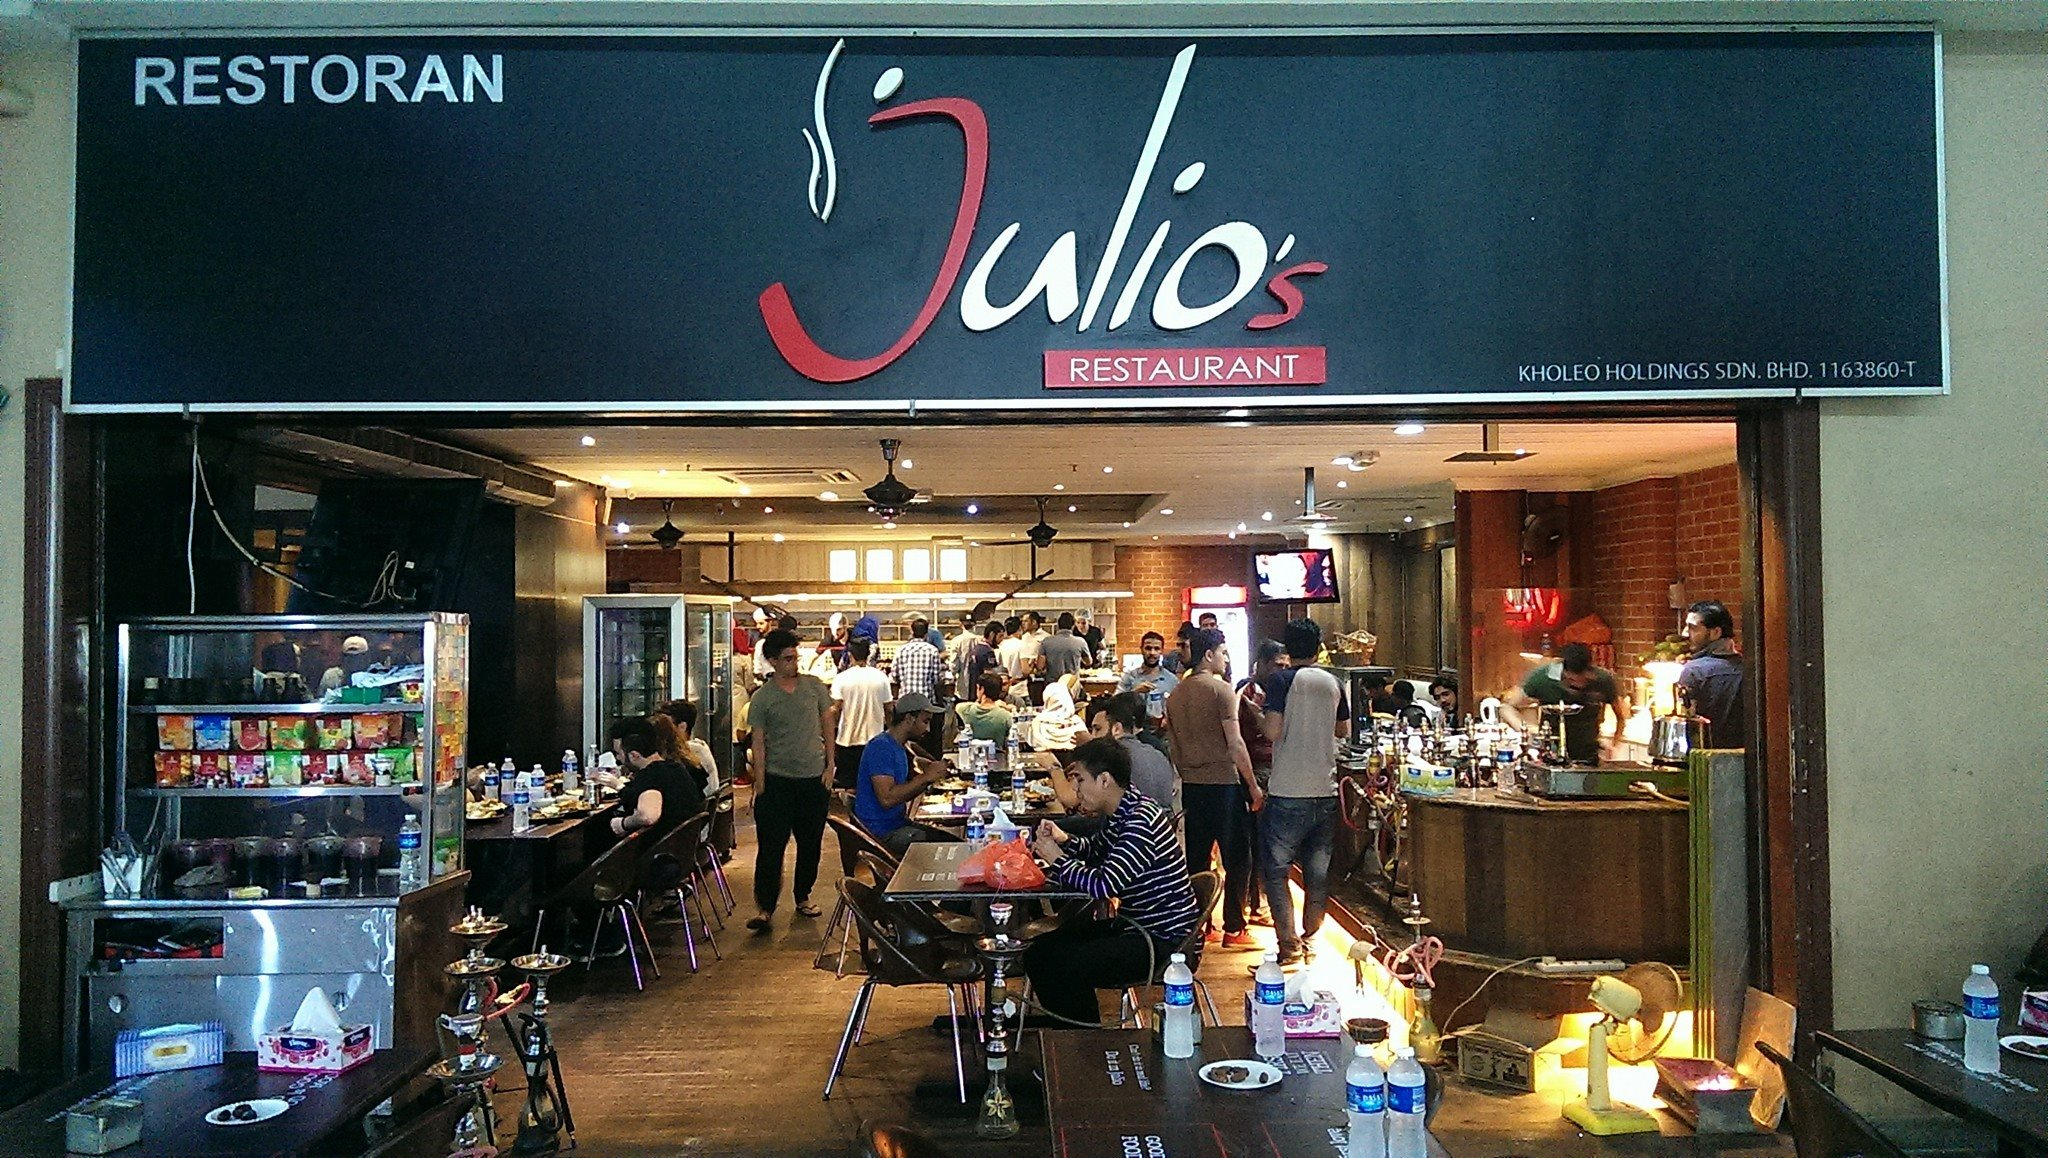 Image from Julio's Restaurant/Facebook